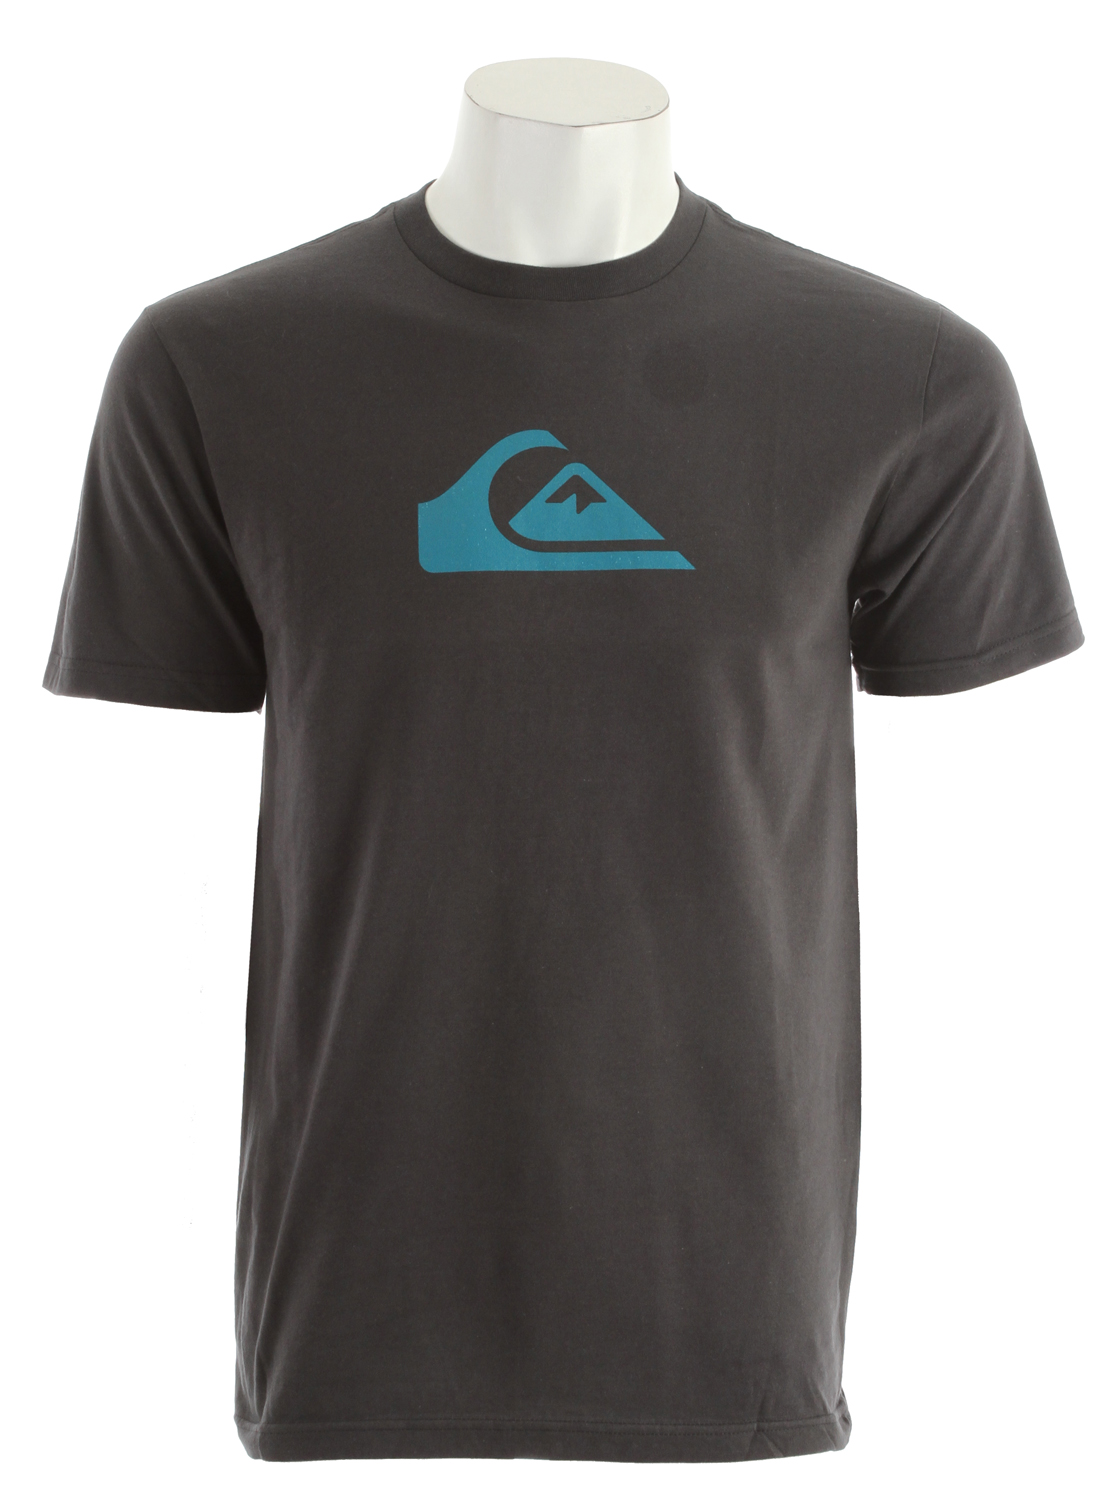 Surf The Mountain Waves slim fit crew says one thing and one thing well - you like mountain and waves. Key Features of the Quiksilver Mountain Wave Slim T-Shirt: 30 singles ringspun combed Solids: 100% Cotton Heathers: 50% cotton, 50% polyester Slim fit Machine wash - $14.95